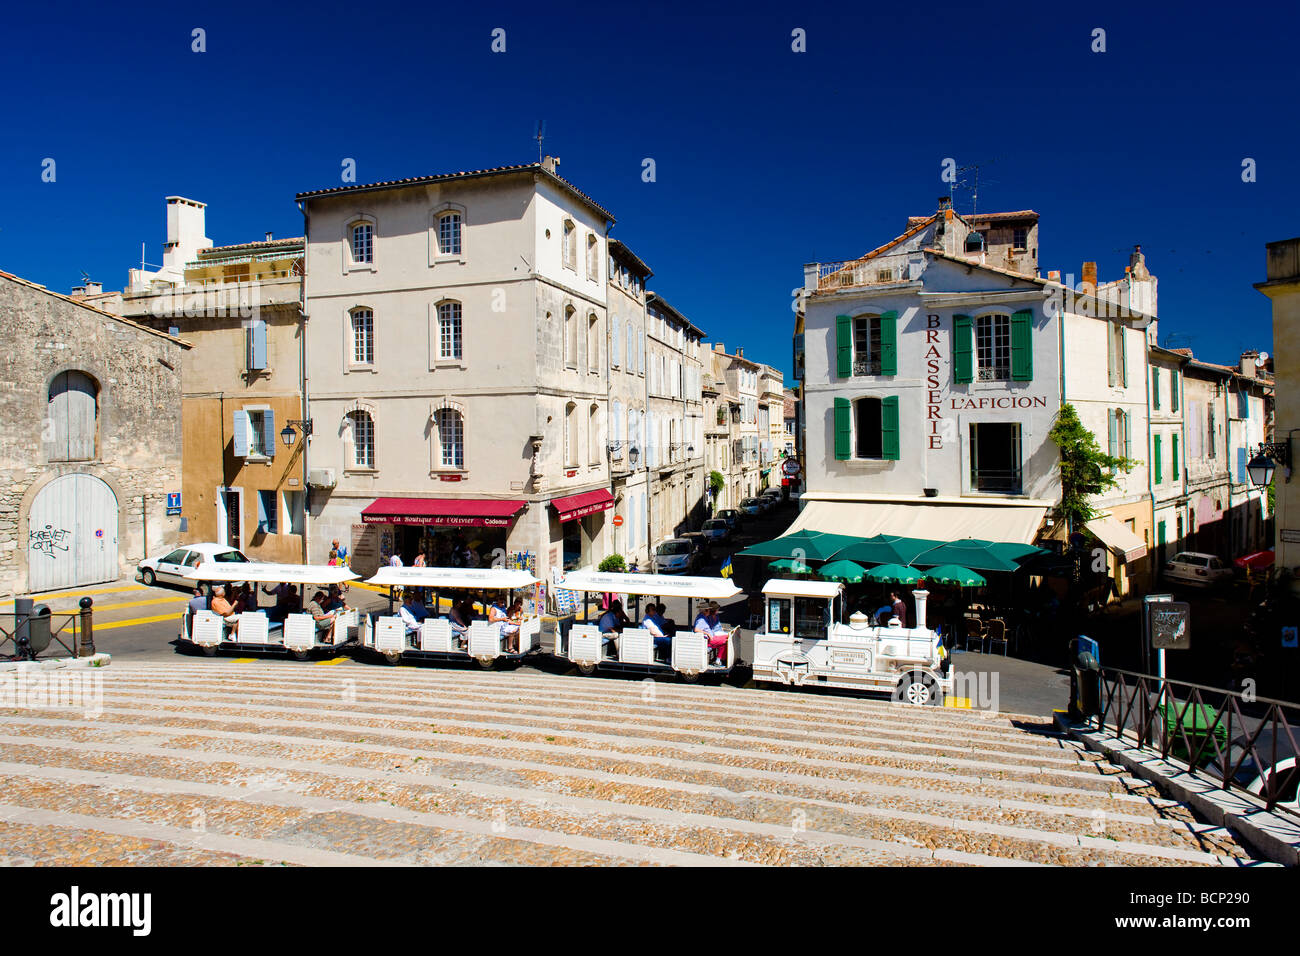 tourist train arles provence france stock photo royalty free image 25071004 alamy. Black Bedroom Furniture Sets. Home Design Ideas